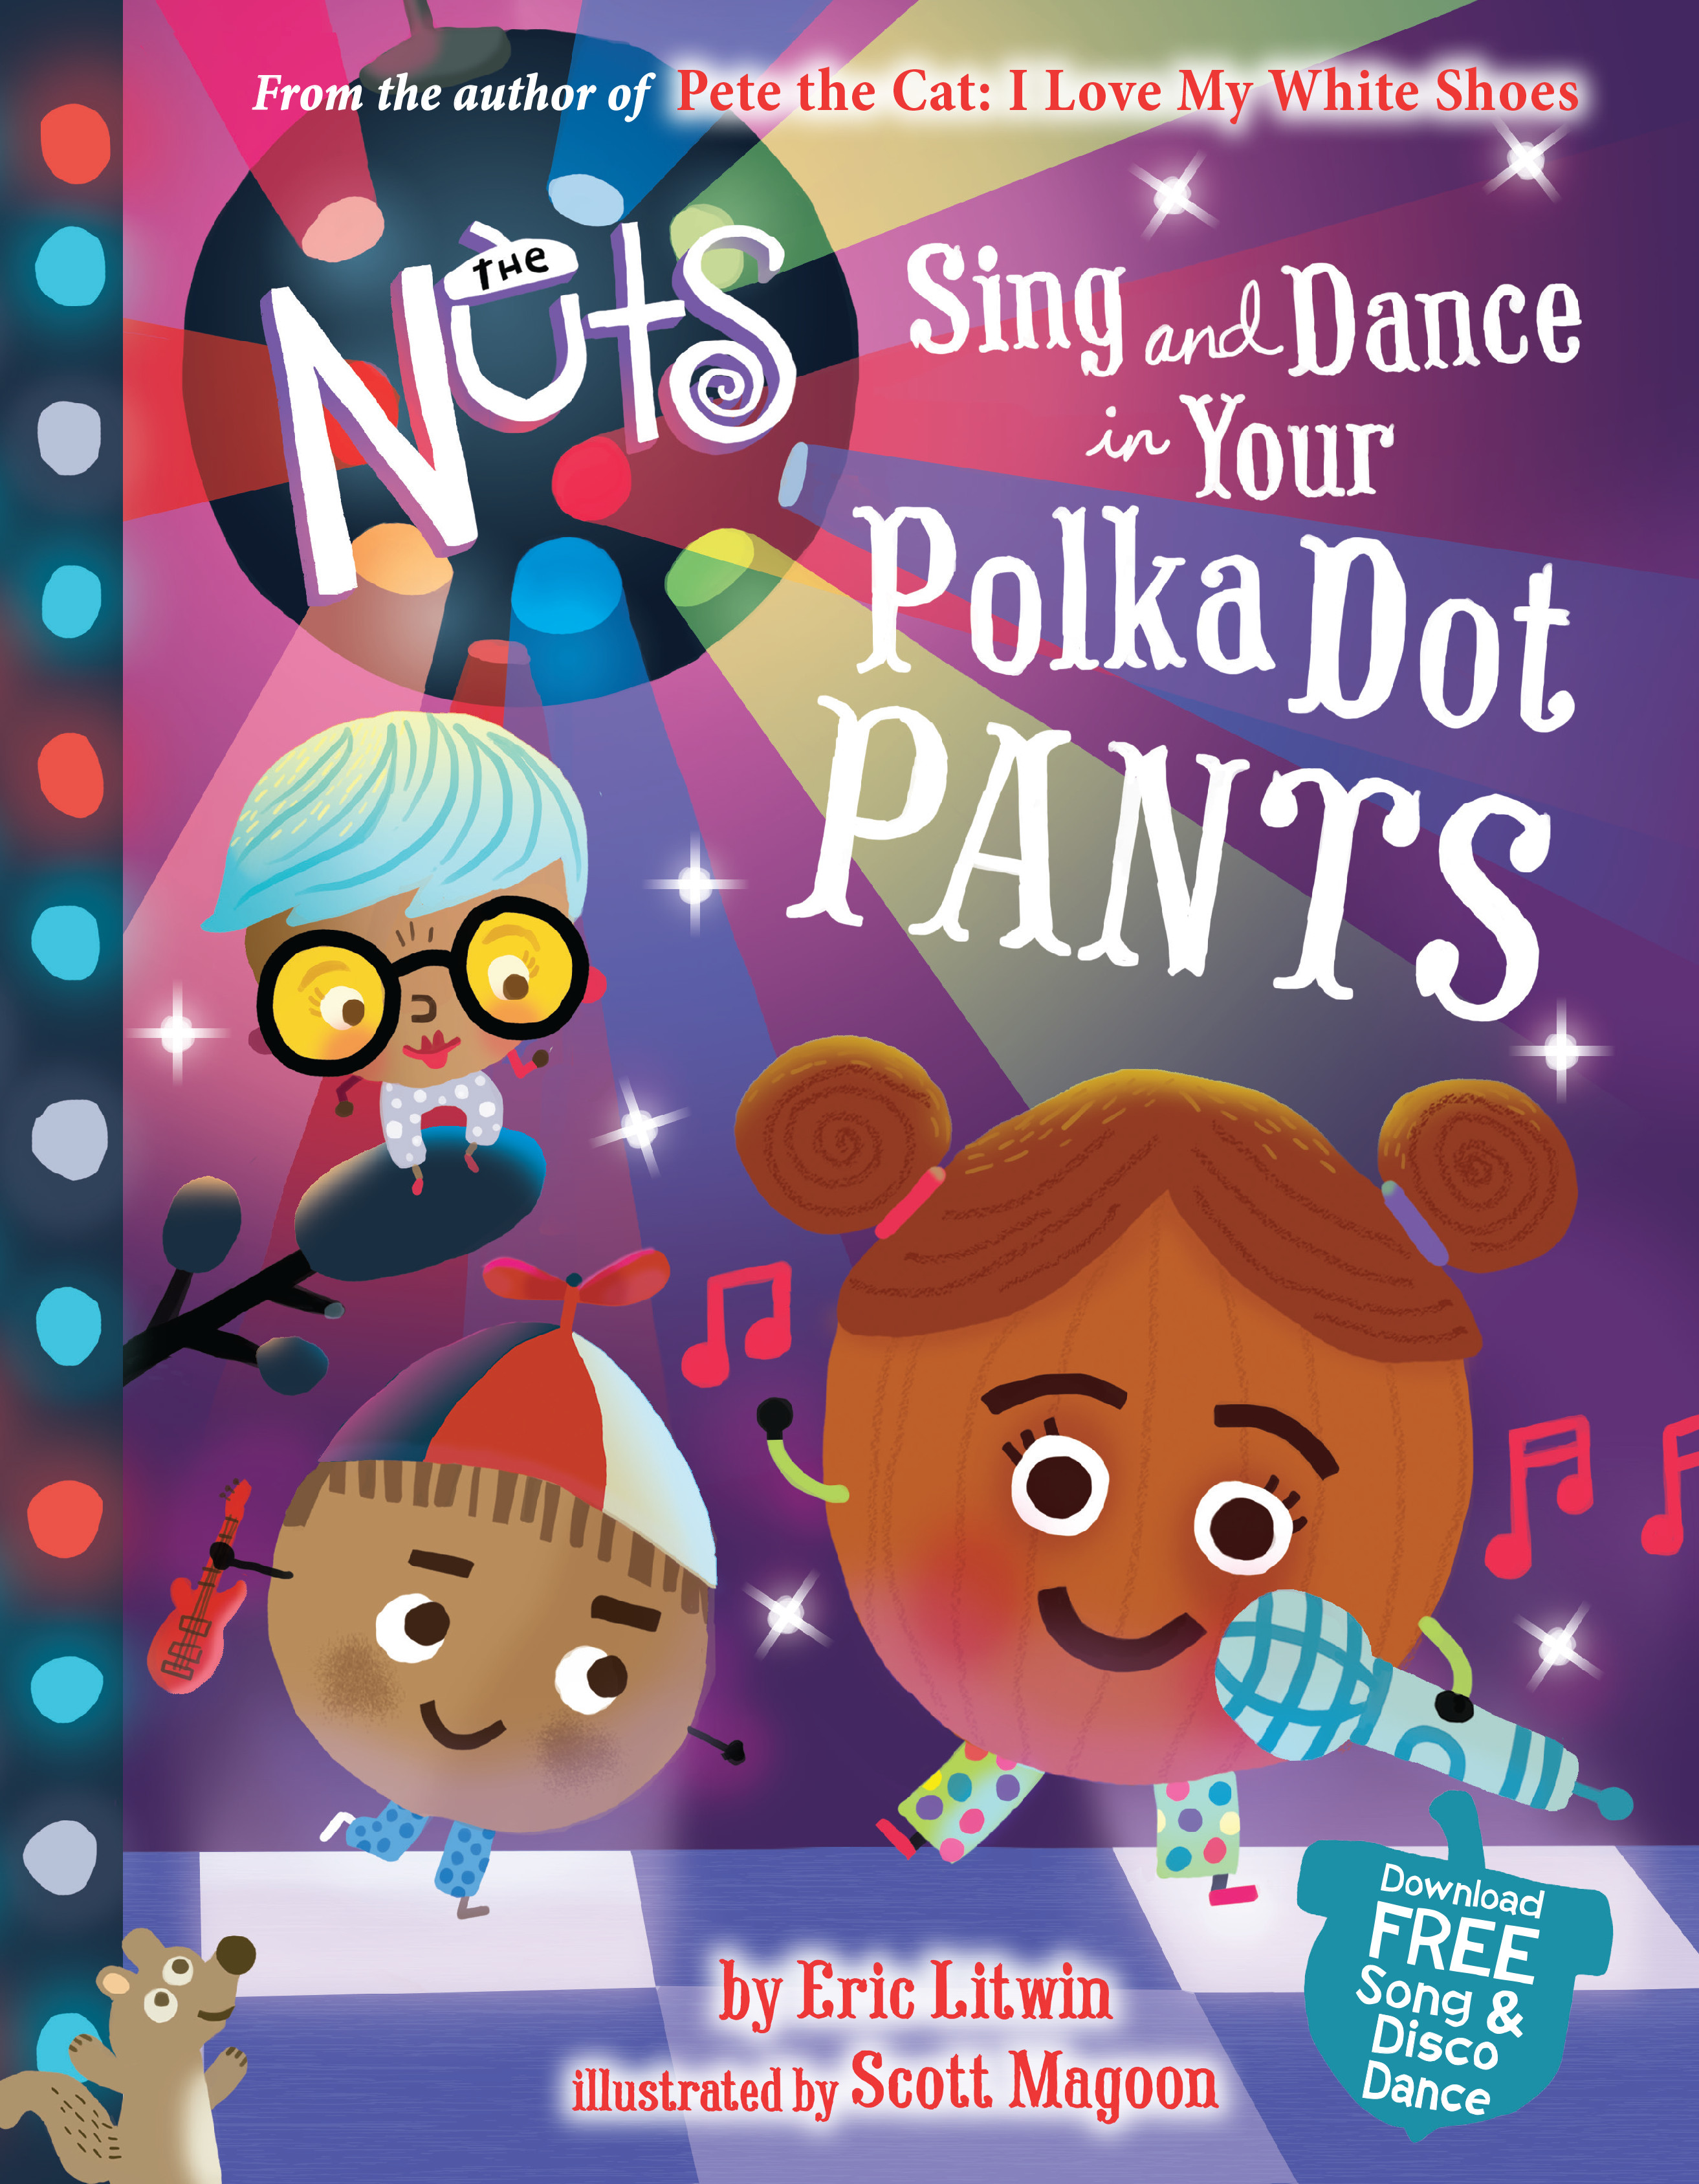 The Nuts: Sing and Dance in Your Polka Dot Pants